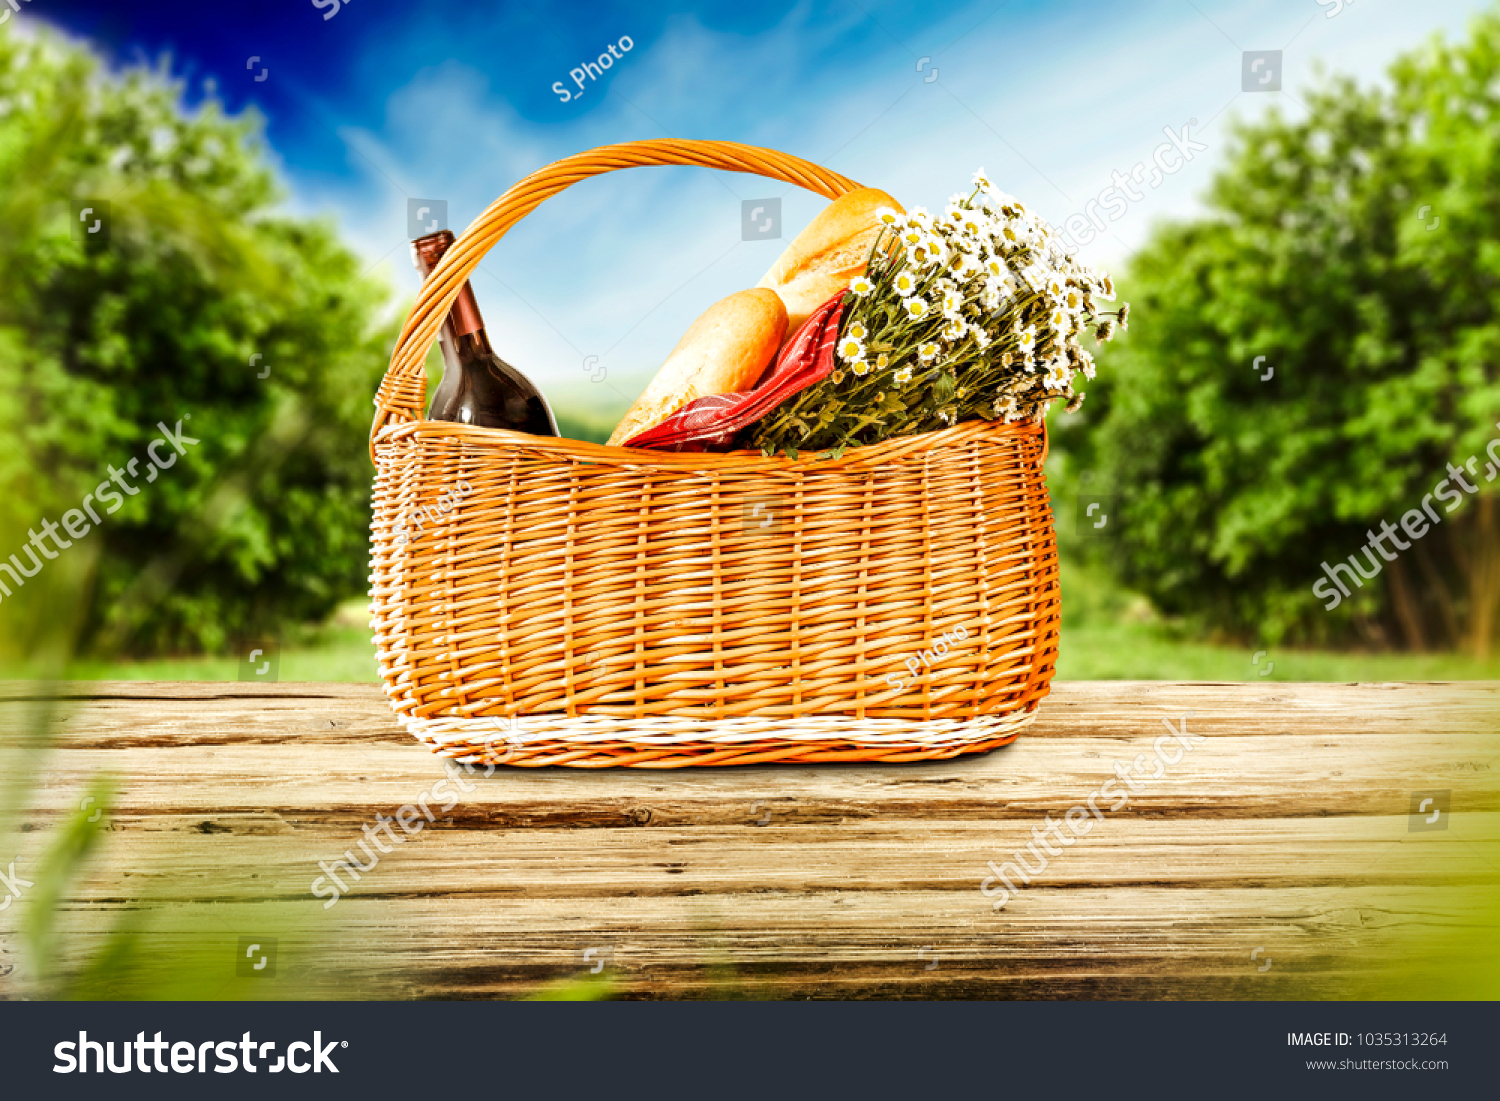 Brown Picnic Basket Food On Wooden Stock Photo Edit Now 1035313264